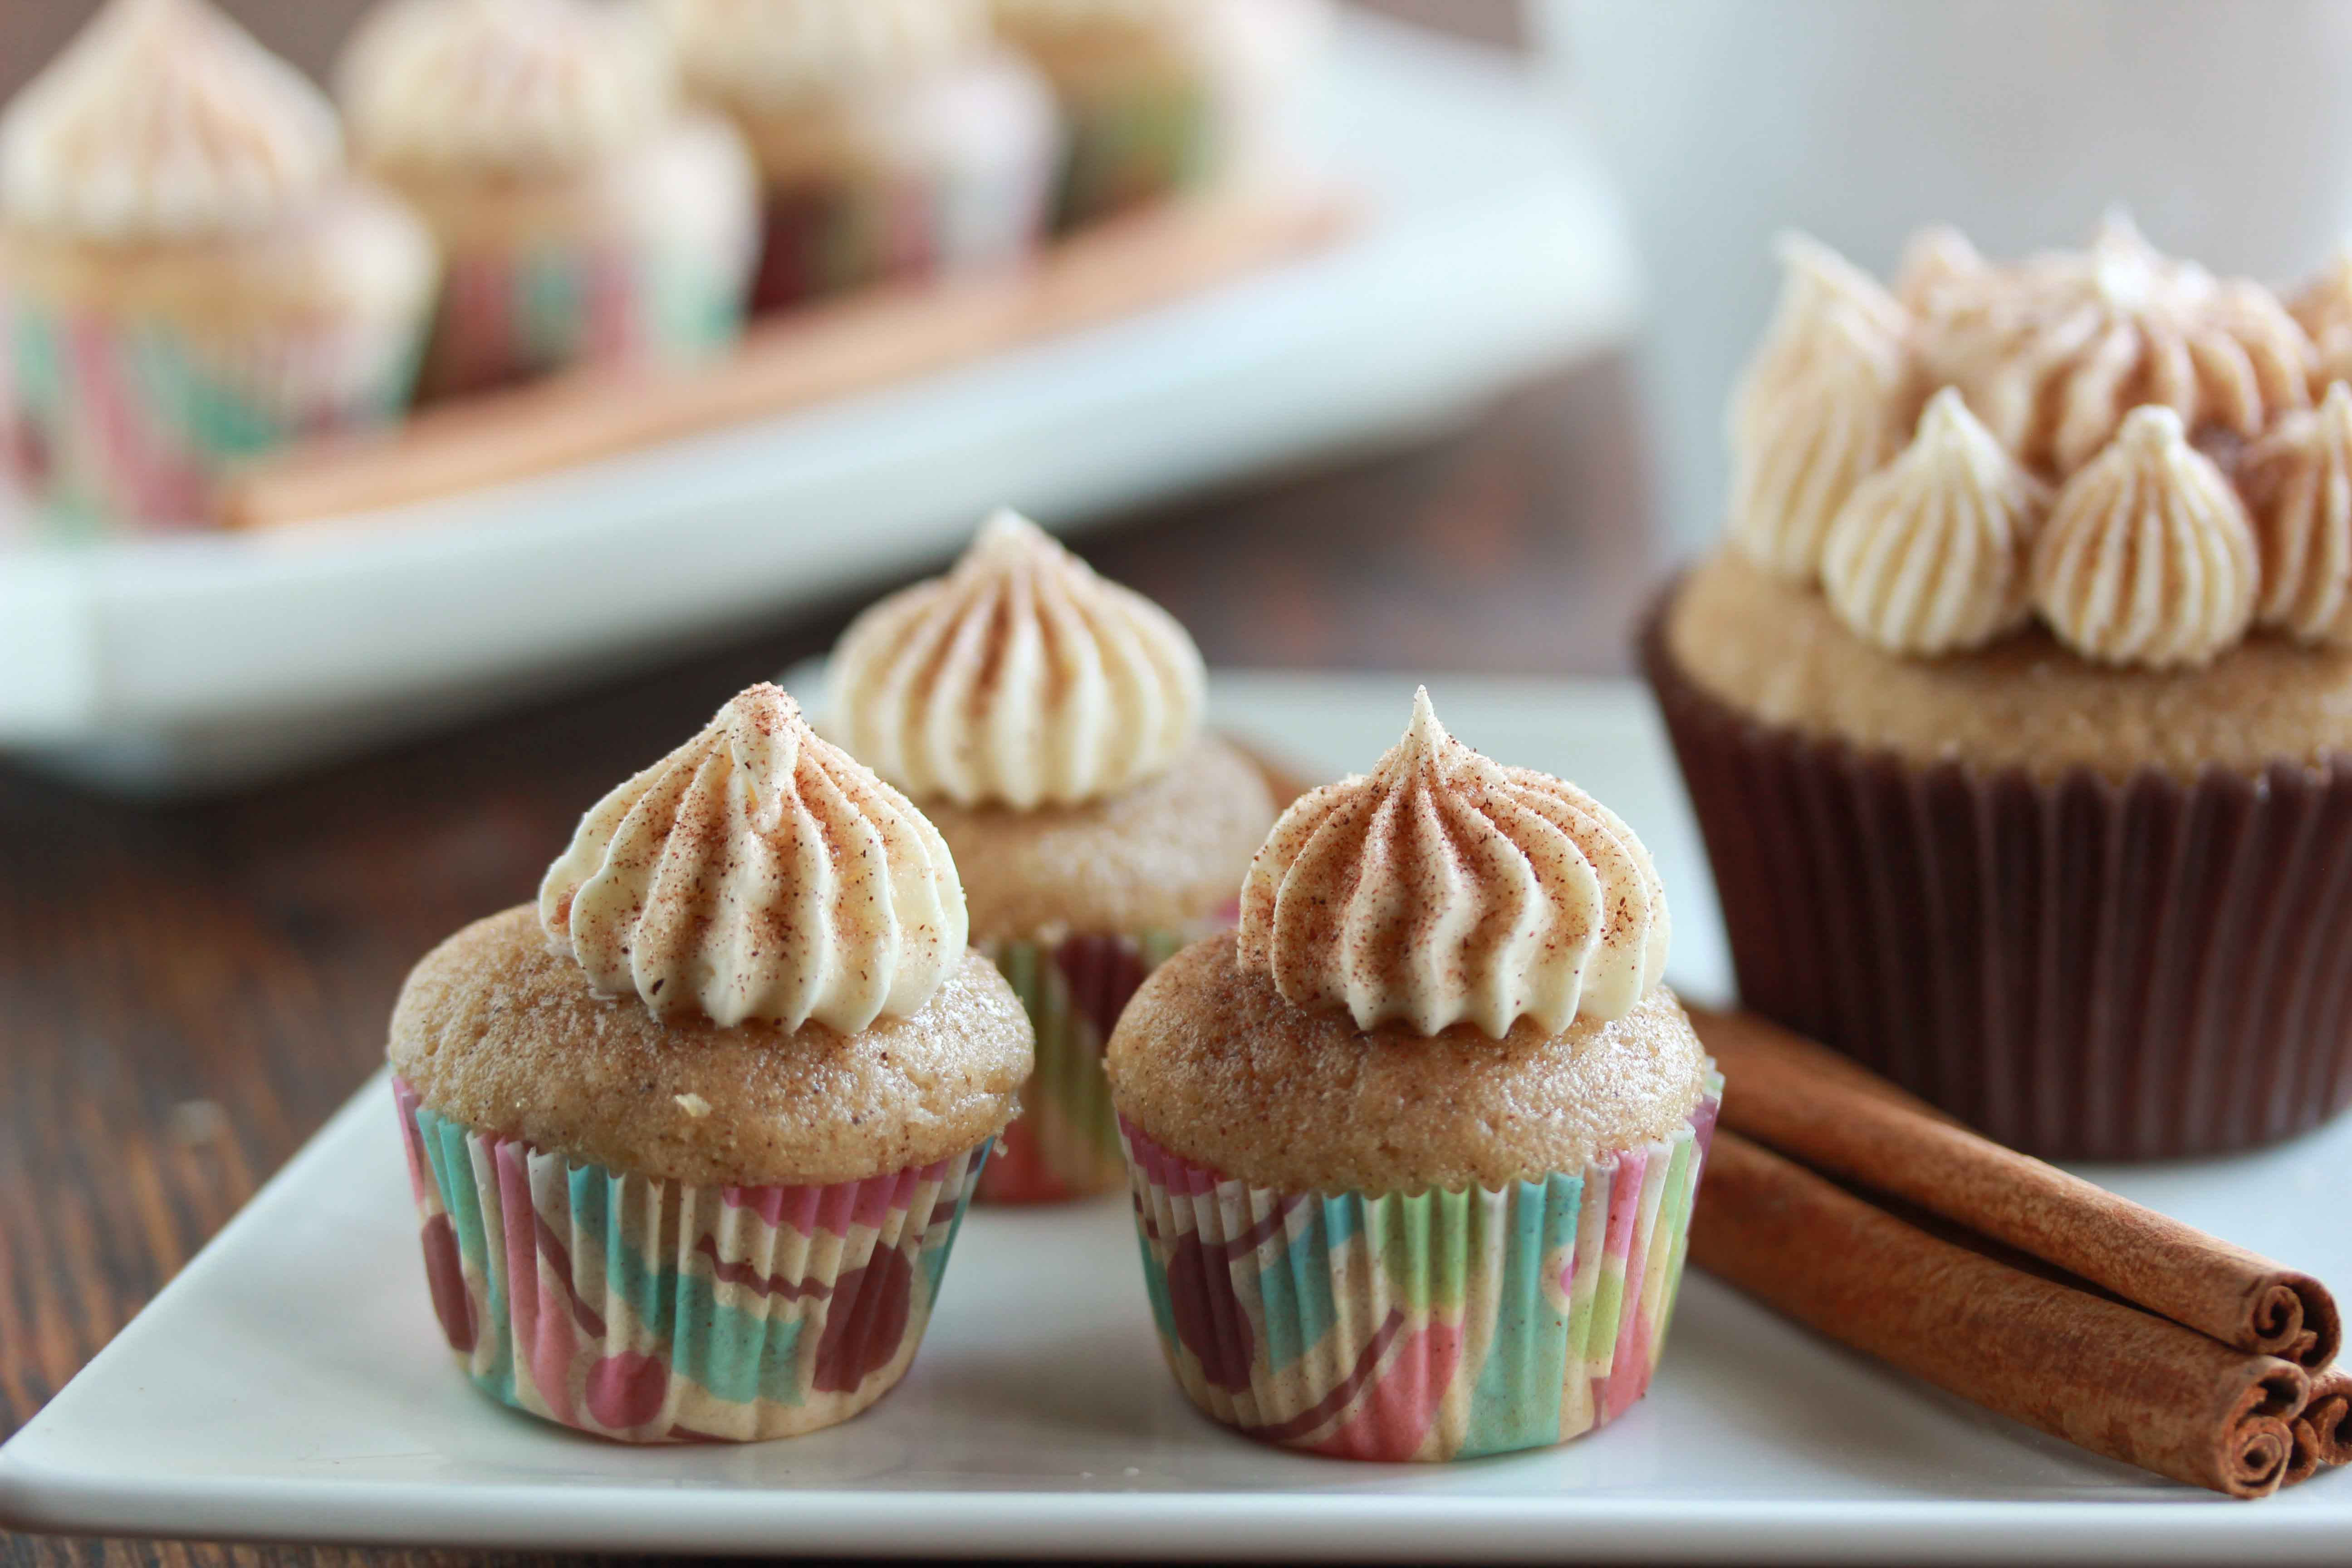 Snickerdoodle Cupcakes with Marshmallow Fluff Frosting - Overtime Cook